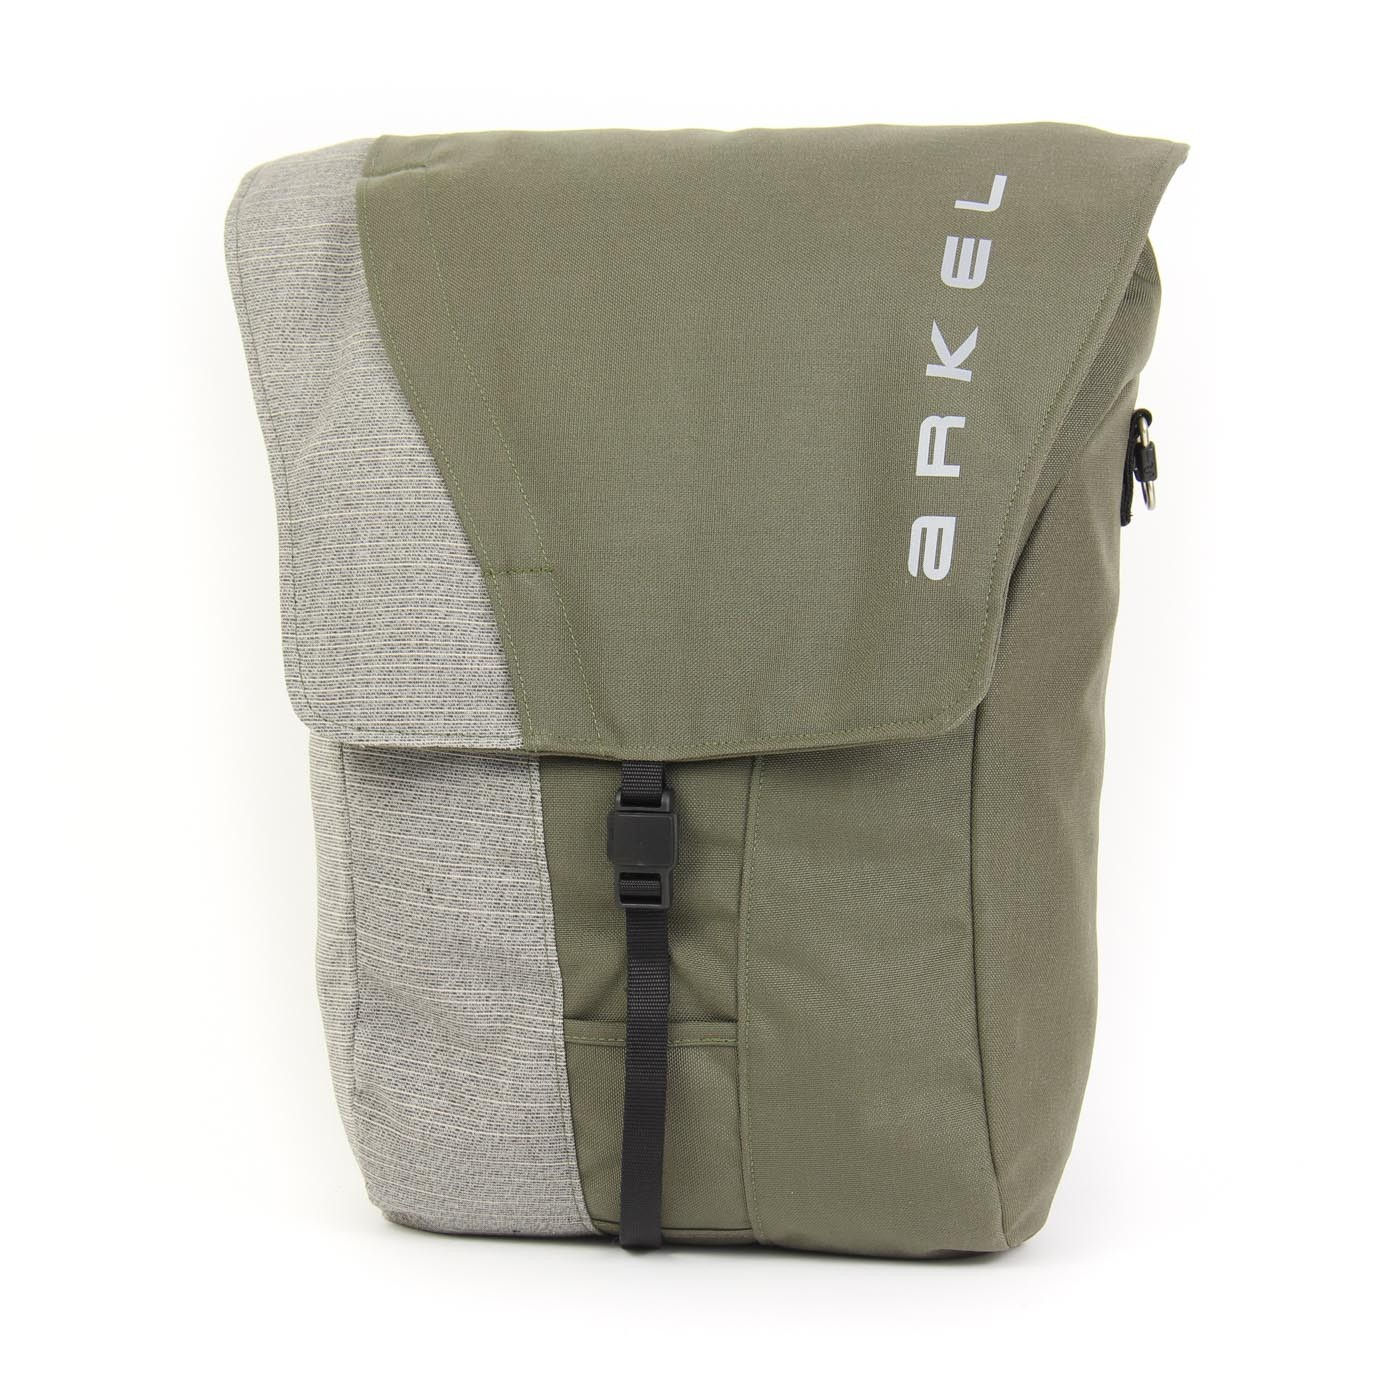 7138e58f25ee Commuting bike pannier for laptops from Arkel